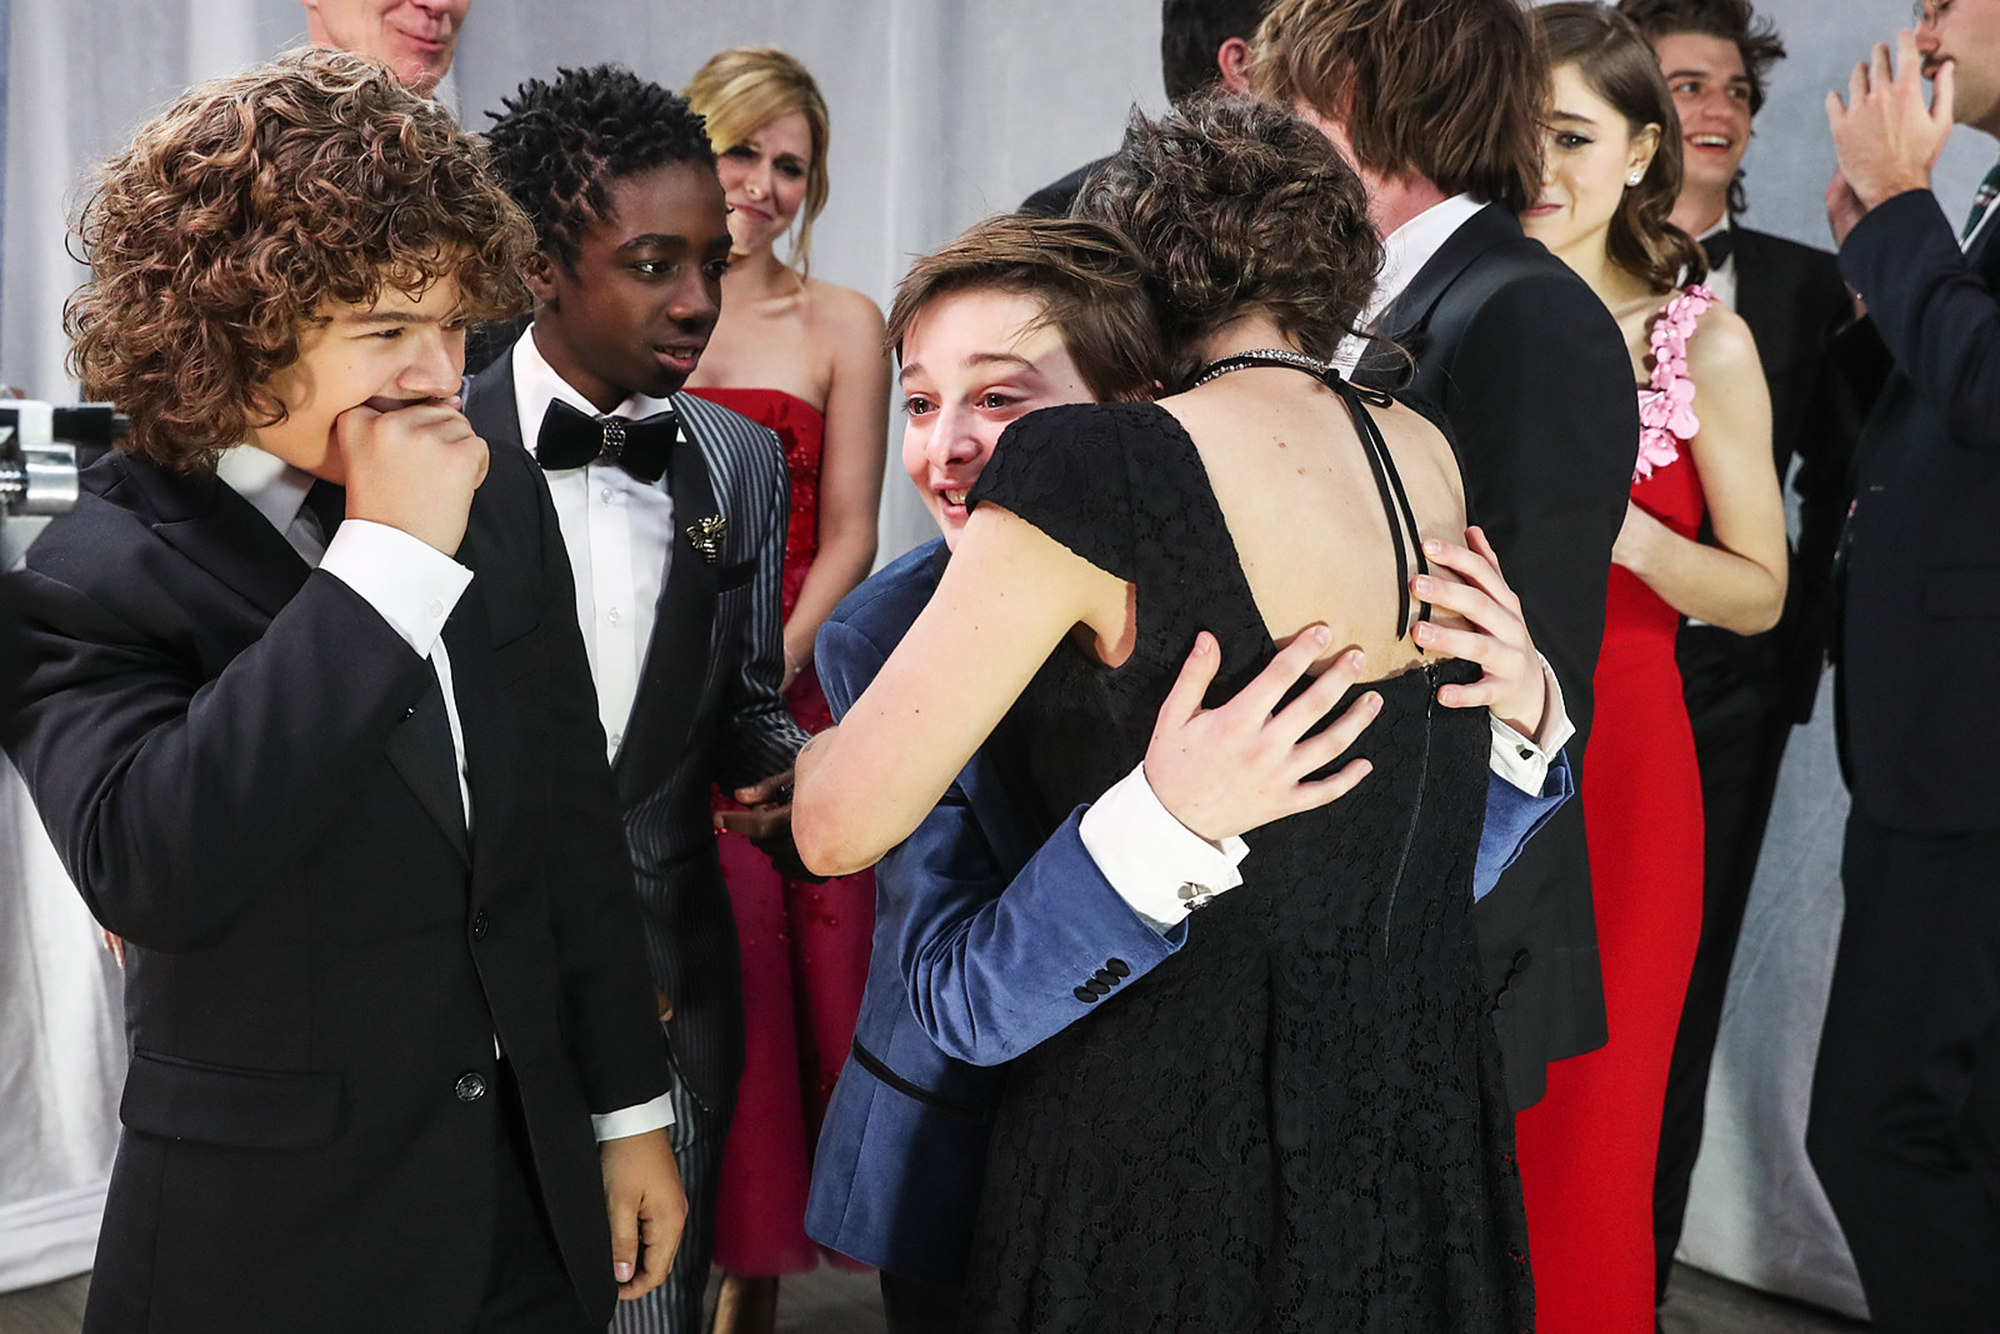 Mark Steger, Caleb McLaughlin, Noah Schnapp and Winona Ryder at the 23rd Annual Screen Actors Guild Awards in Los Angeles, on Jan. 29, 2017.